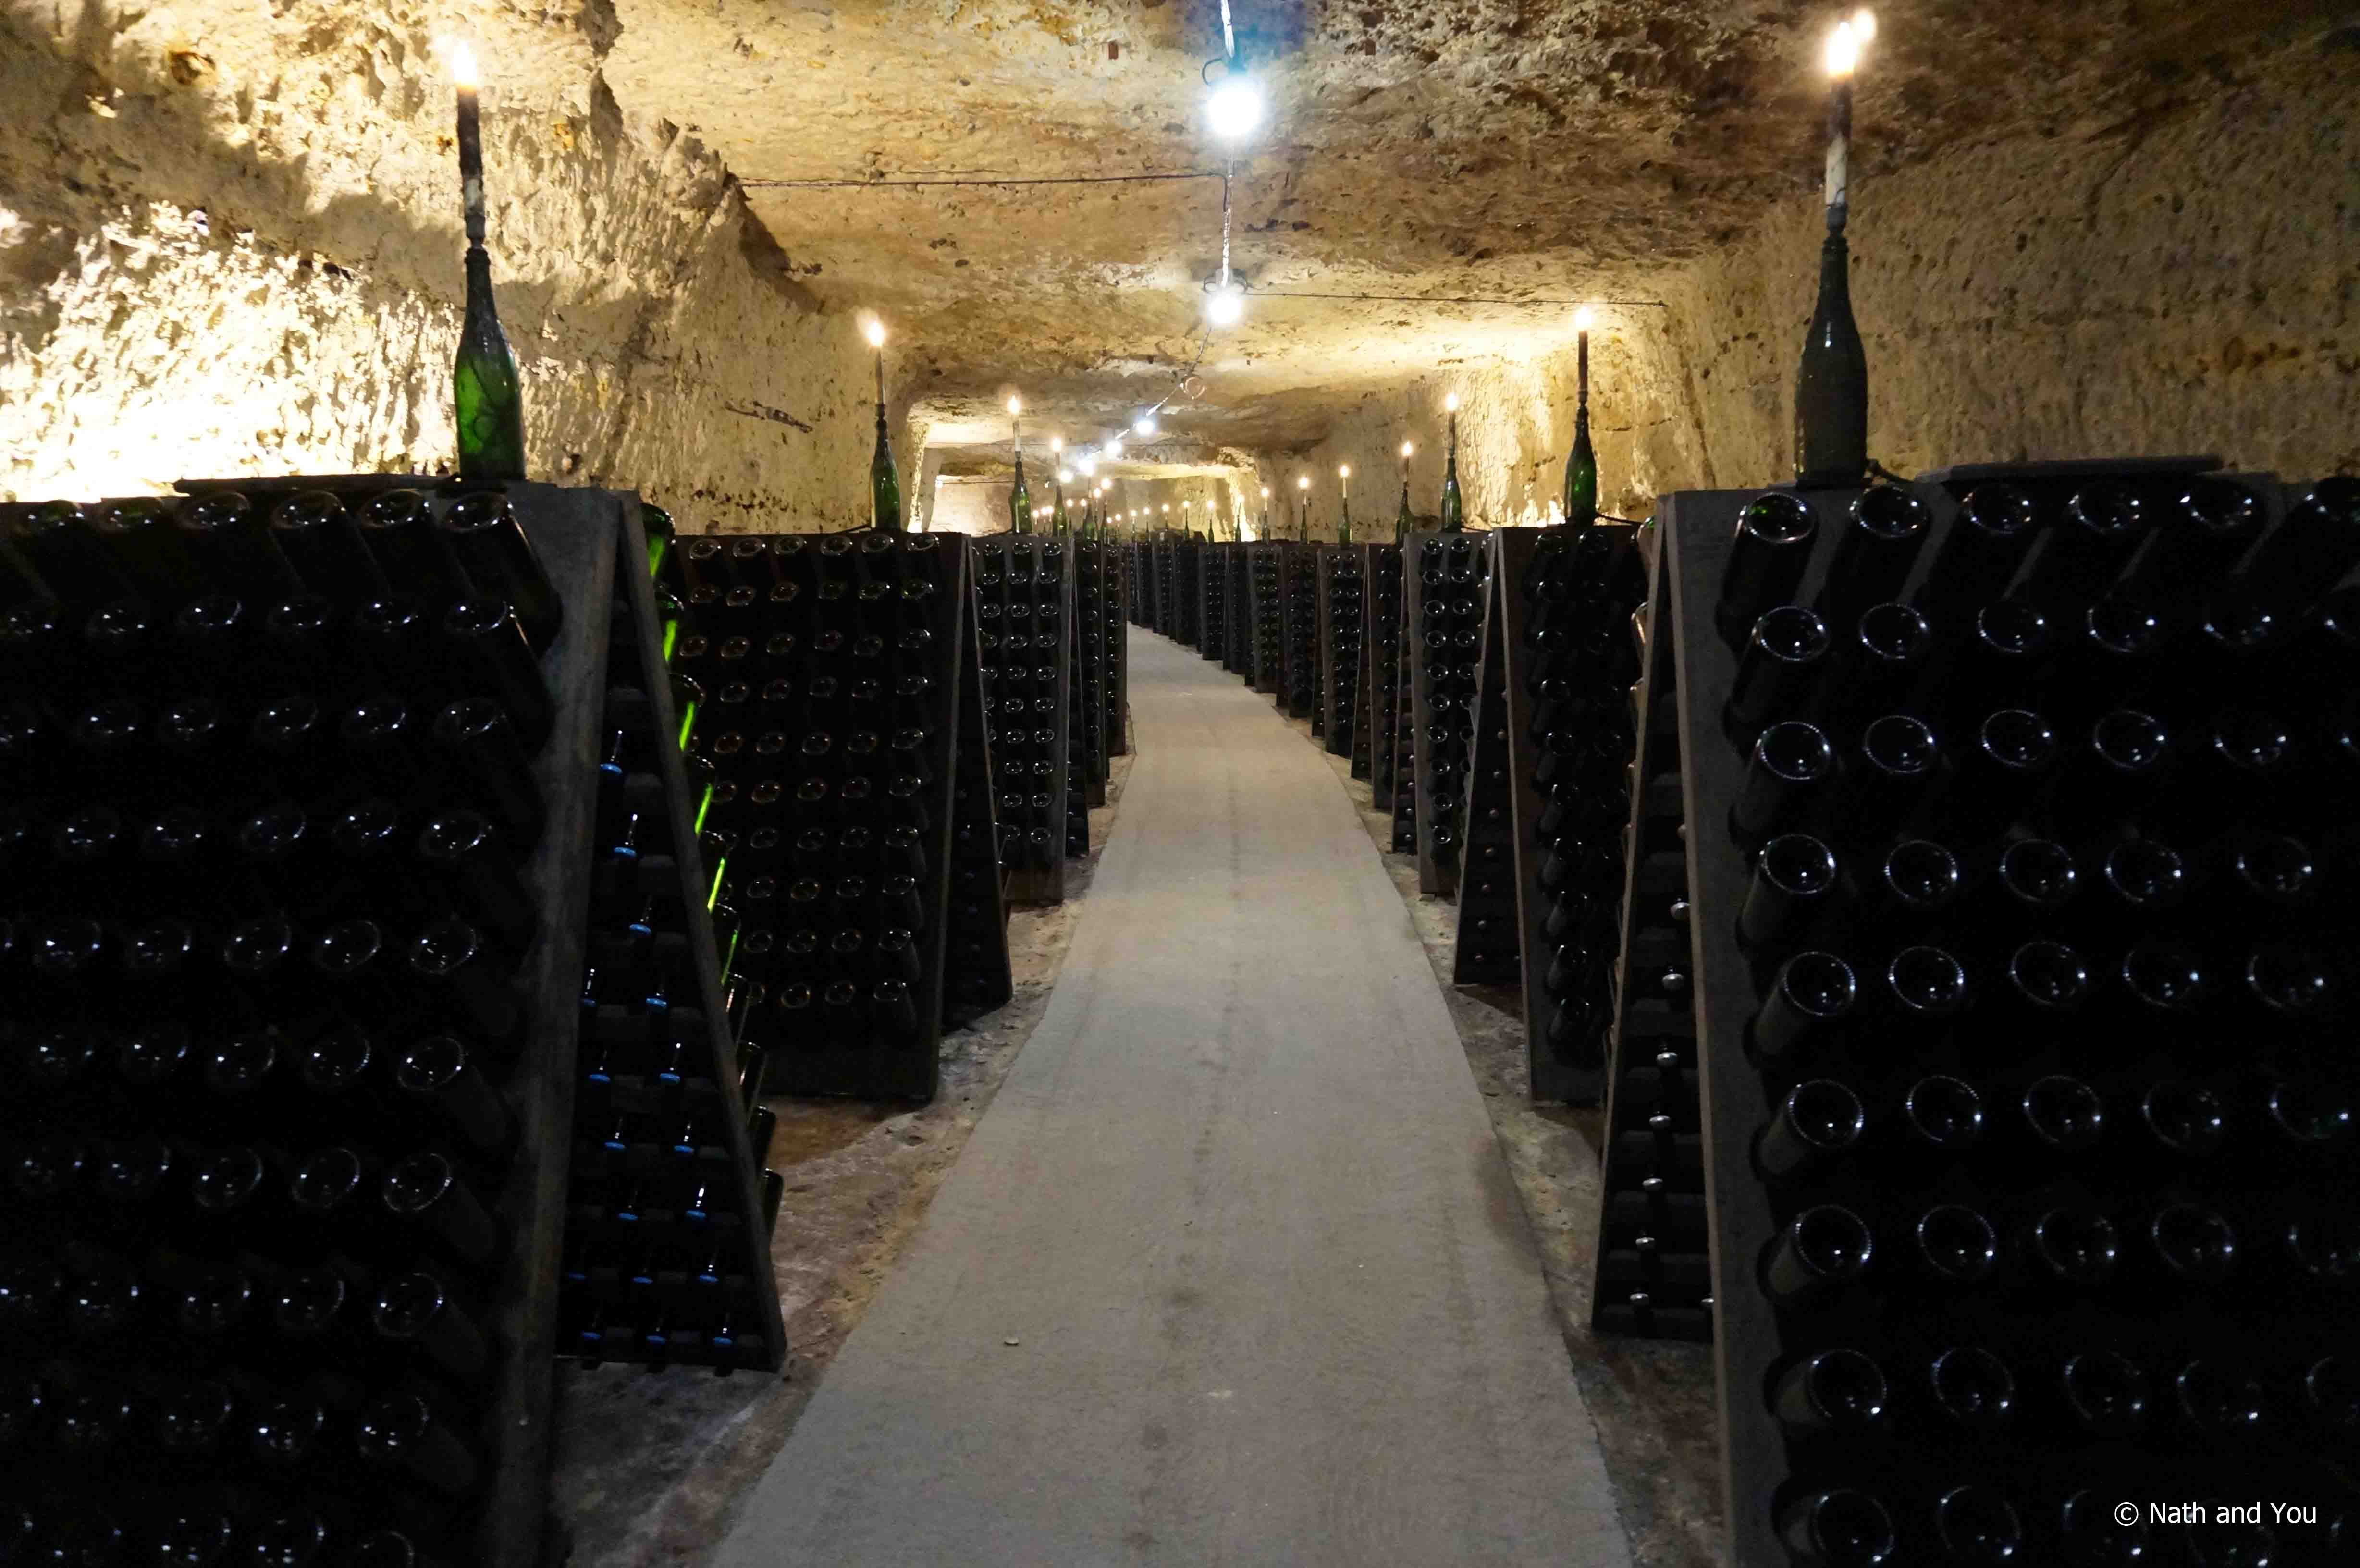 Maison-Bredif-Cave-vins-Chateaux-Loire-Nath-and-you